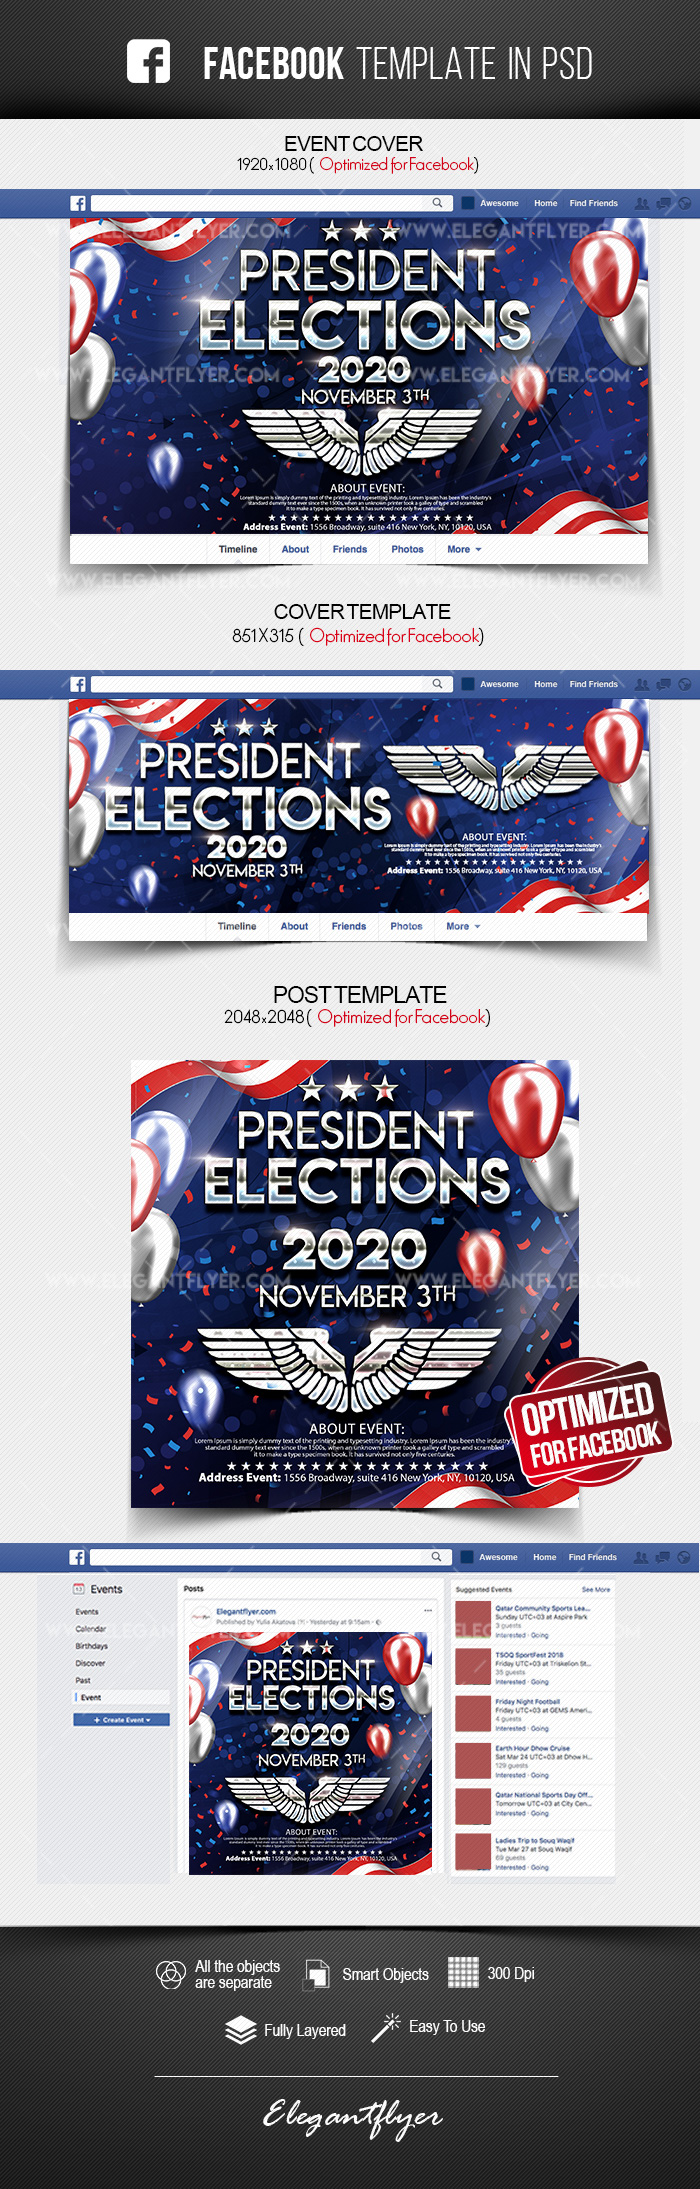 President Elections – Facebook Cover Template in PSD + Post + Event cover